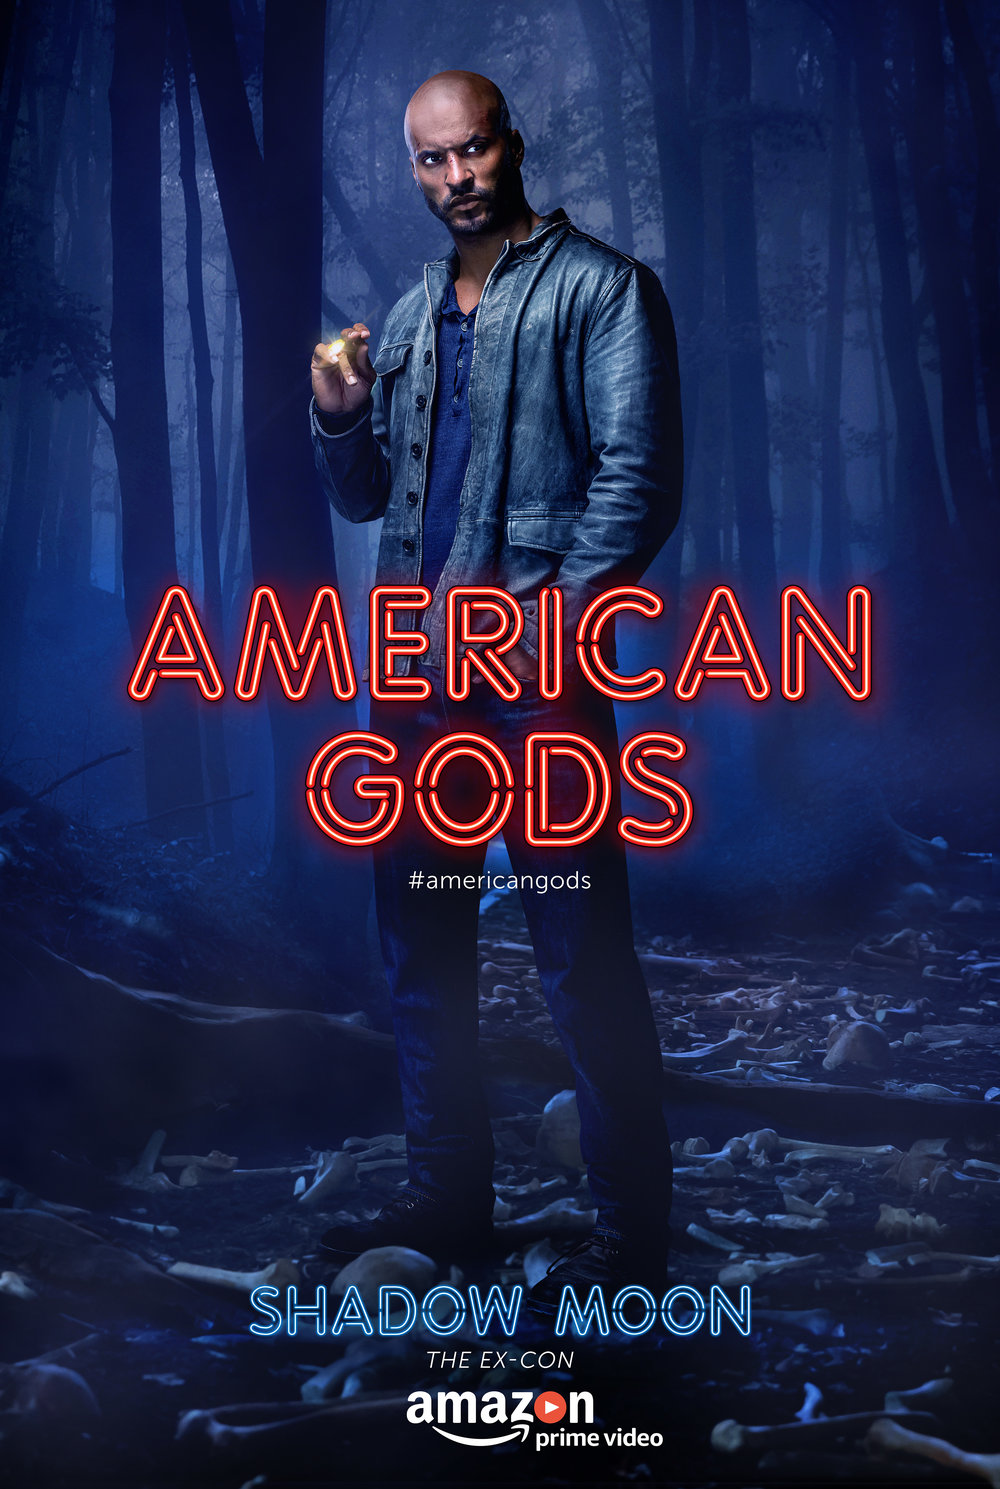 "On becoming Shadow Moon, the central figure of Neil Gaiman's 2001 novel American Gods, Whittle says, ""It's not just picking up any fictional character. it's almost like doing a biography now. You know, I'm Daniel Day-Lewising the heck out of it because he's a real person to so many fans."" Photo courtesy of Amazon Prime Video."